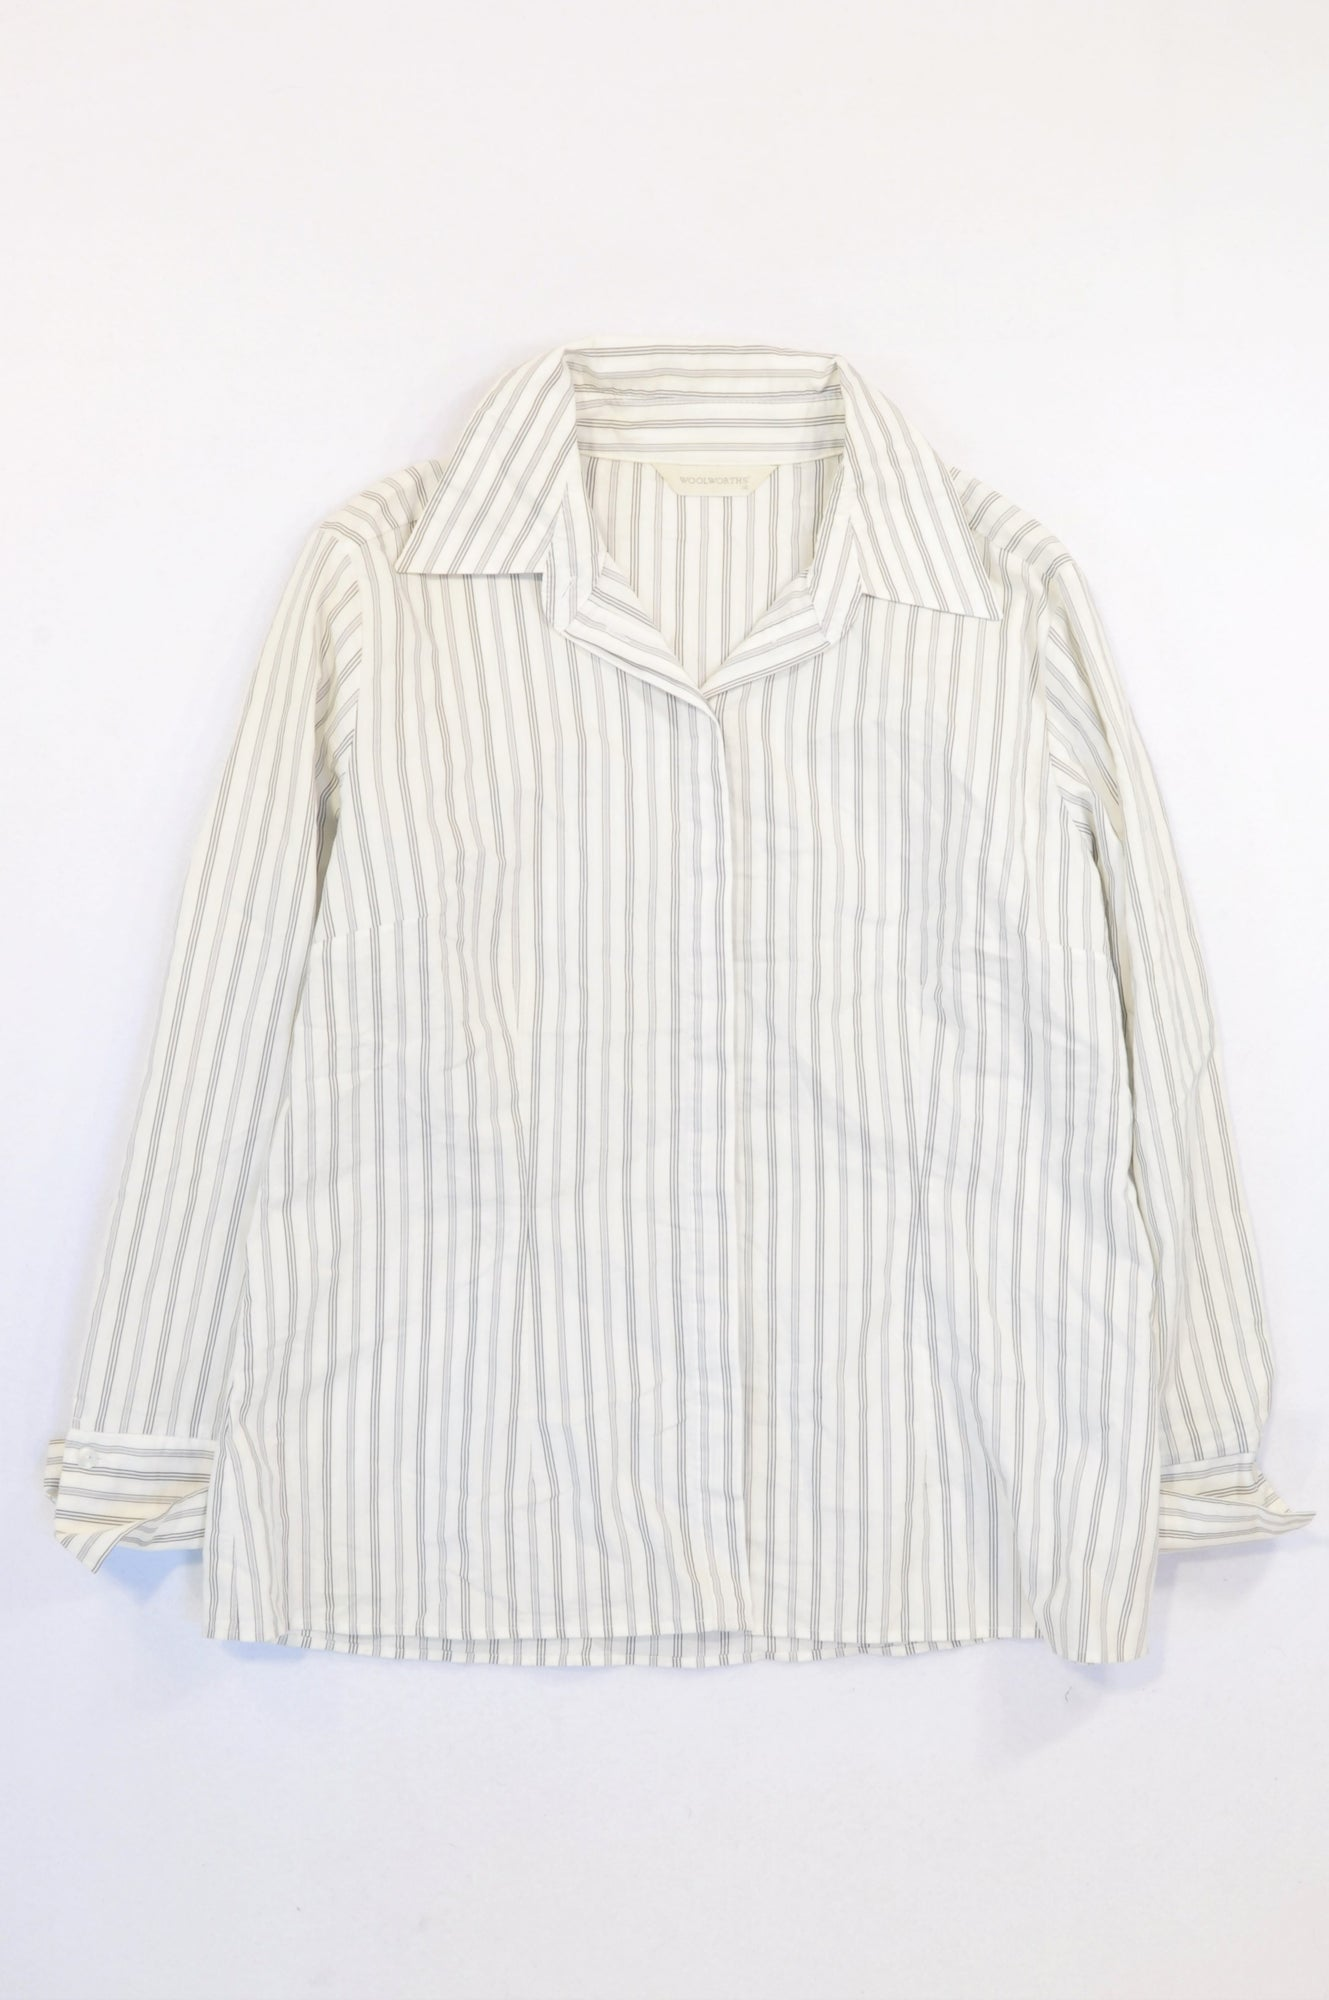 Woolworths White & Grey Pinstripe Formal T-shirt Women Size 16